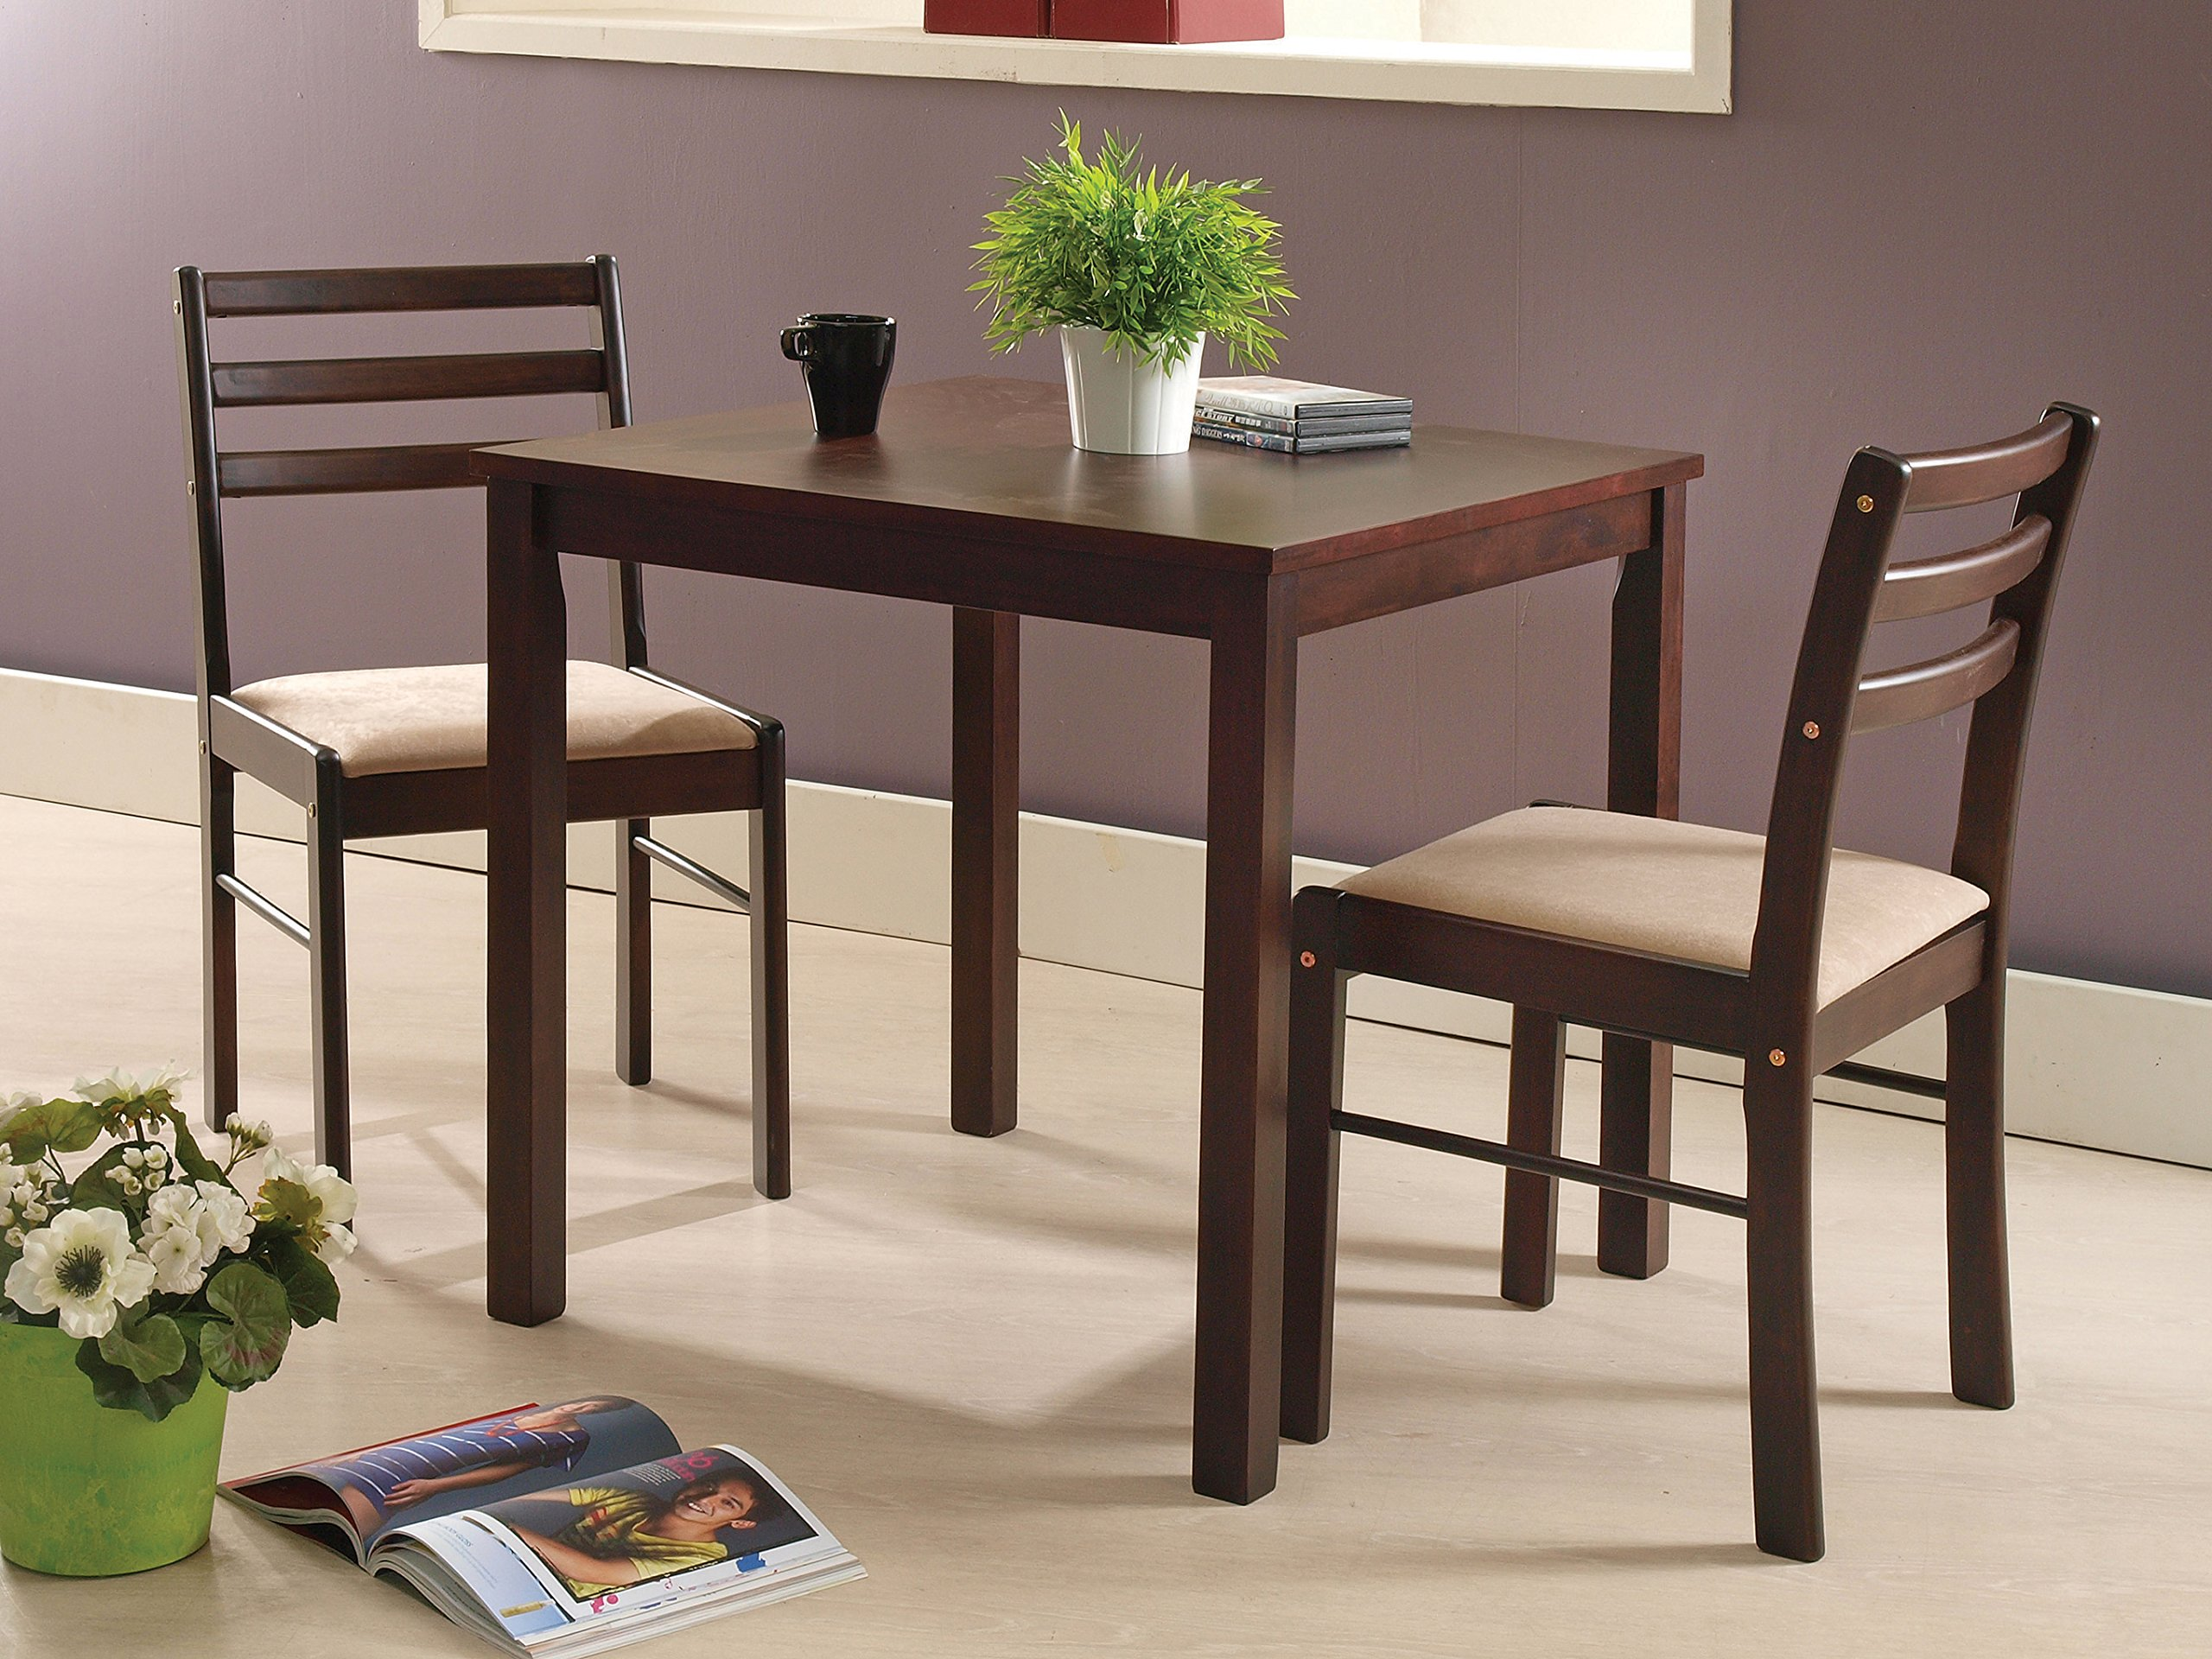 Kings Brand Furniture 9 Piece Dining Room Kitchen Dinette Set, Table & 9  Chairs